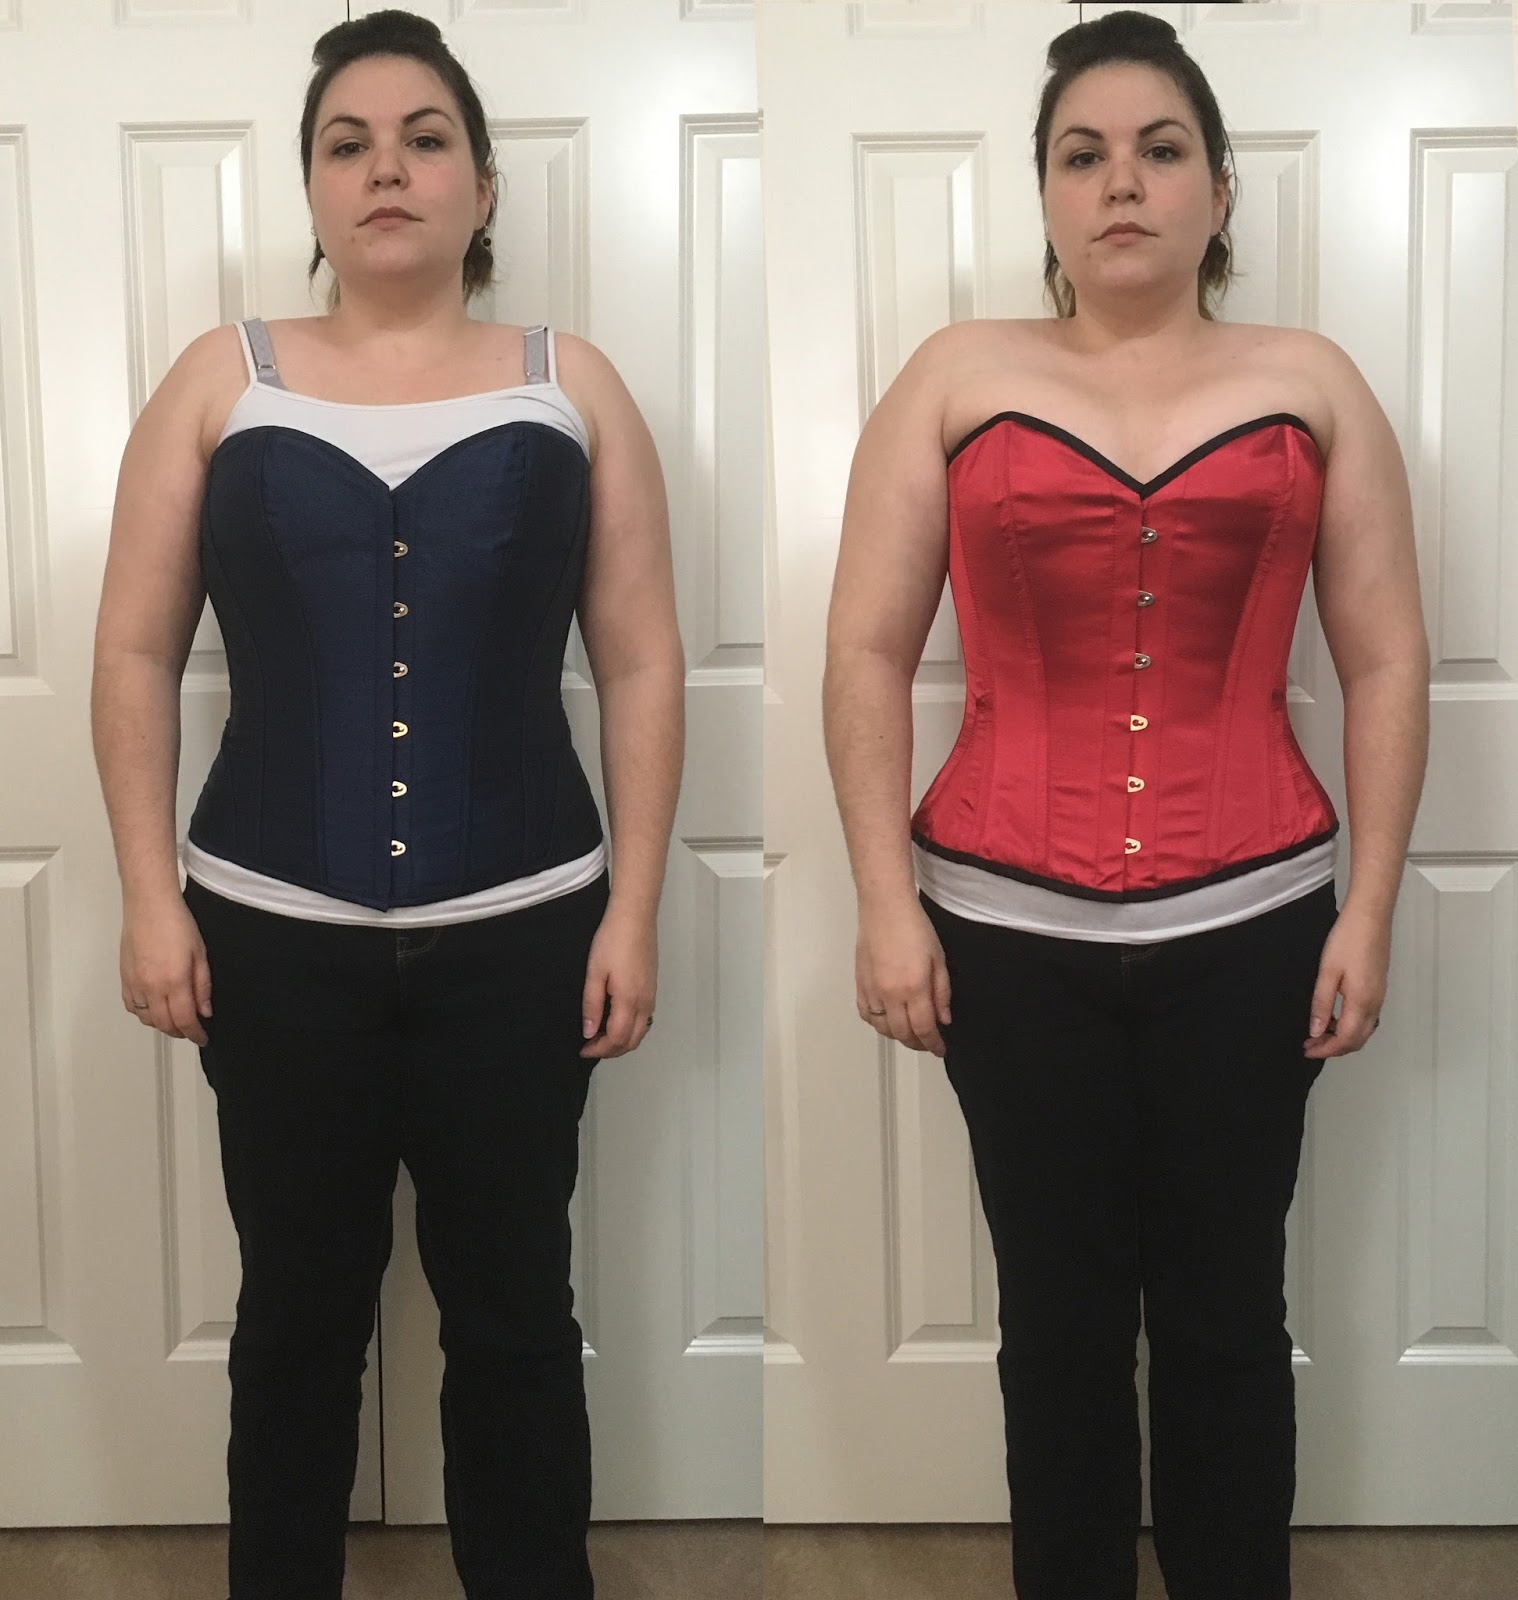 b32e9208067 If Alanna wished to accentuate her small waist instead of enhance her  bustline